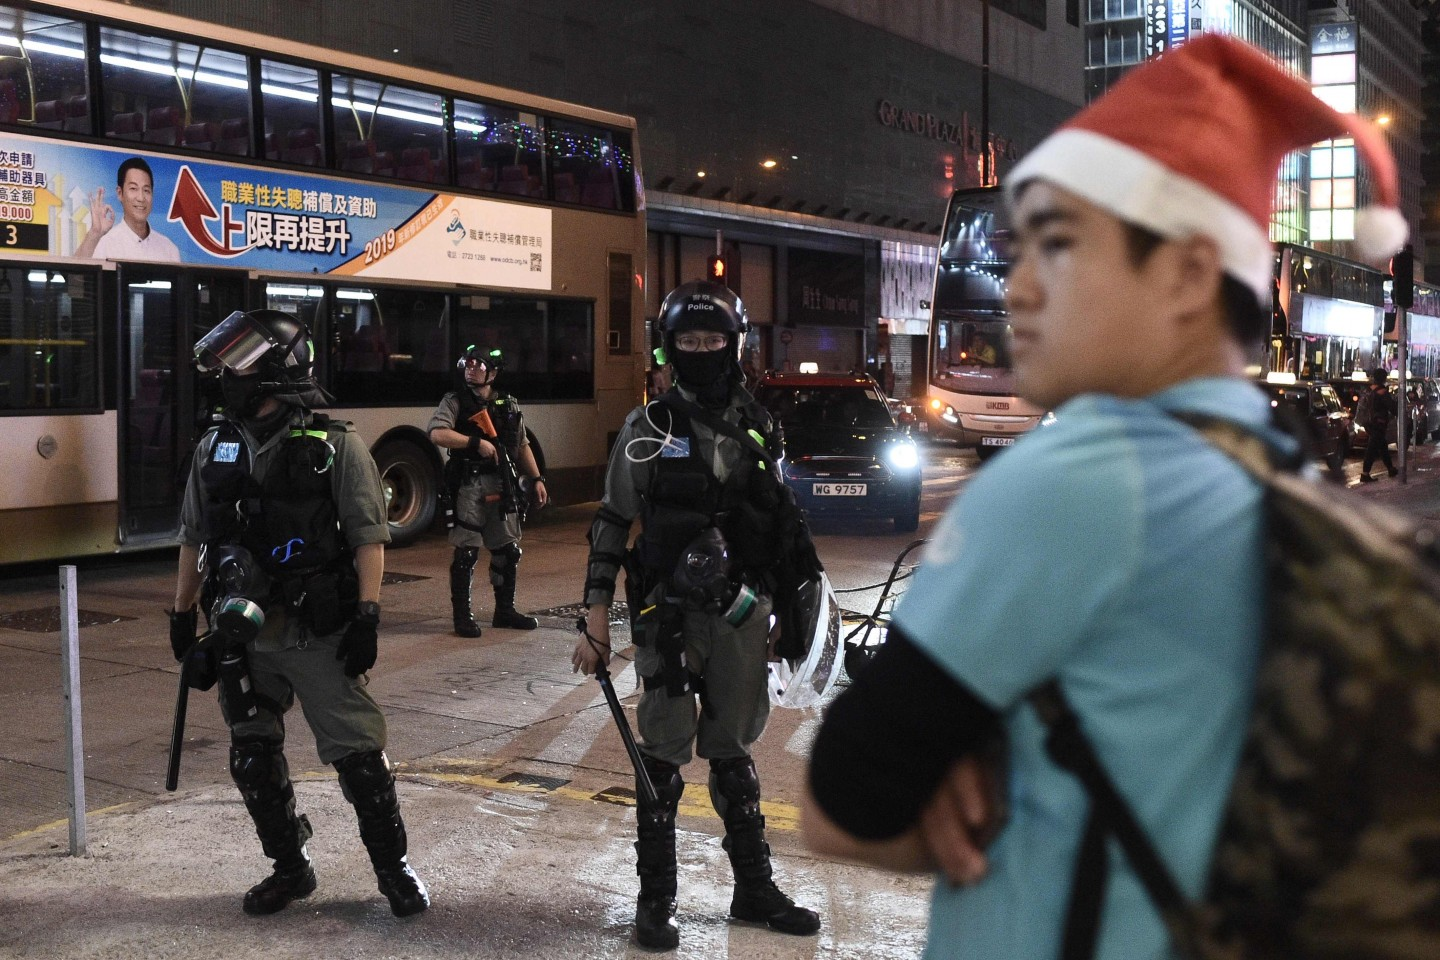 """Hong Kong's Christmas celebrations were marred by sporadic clashes between police and pro-democracy activists on 25 December 2019 as the city's pro-Beijing leader said the festive season was being """"ruined"""" by demonstrators. (Philip Fong/AFP)"""